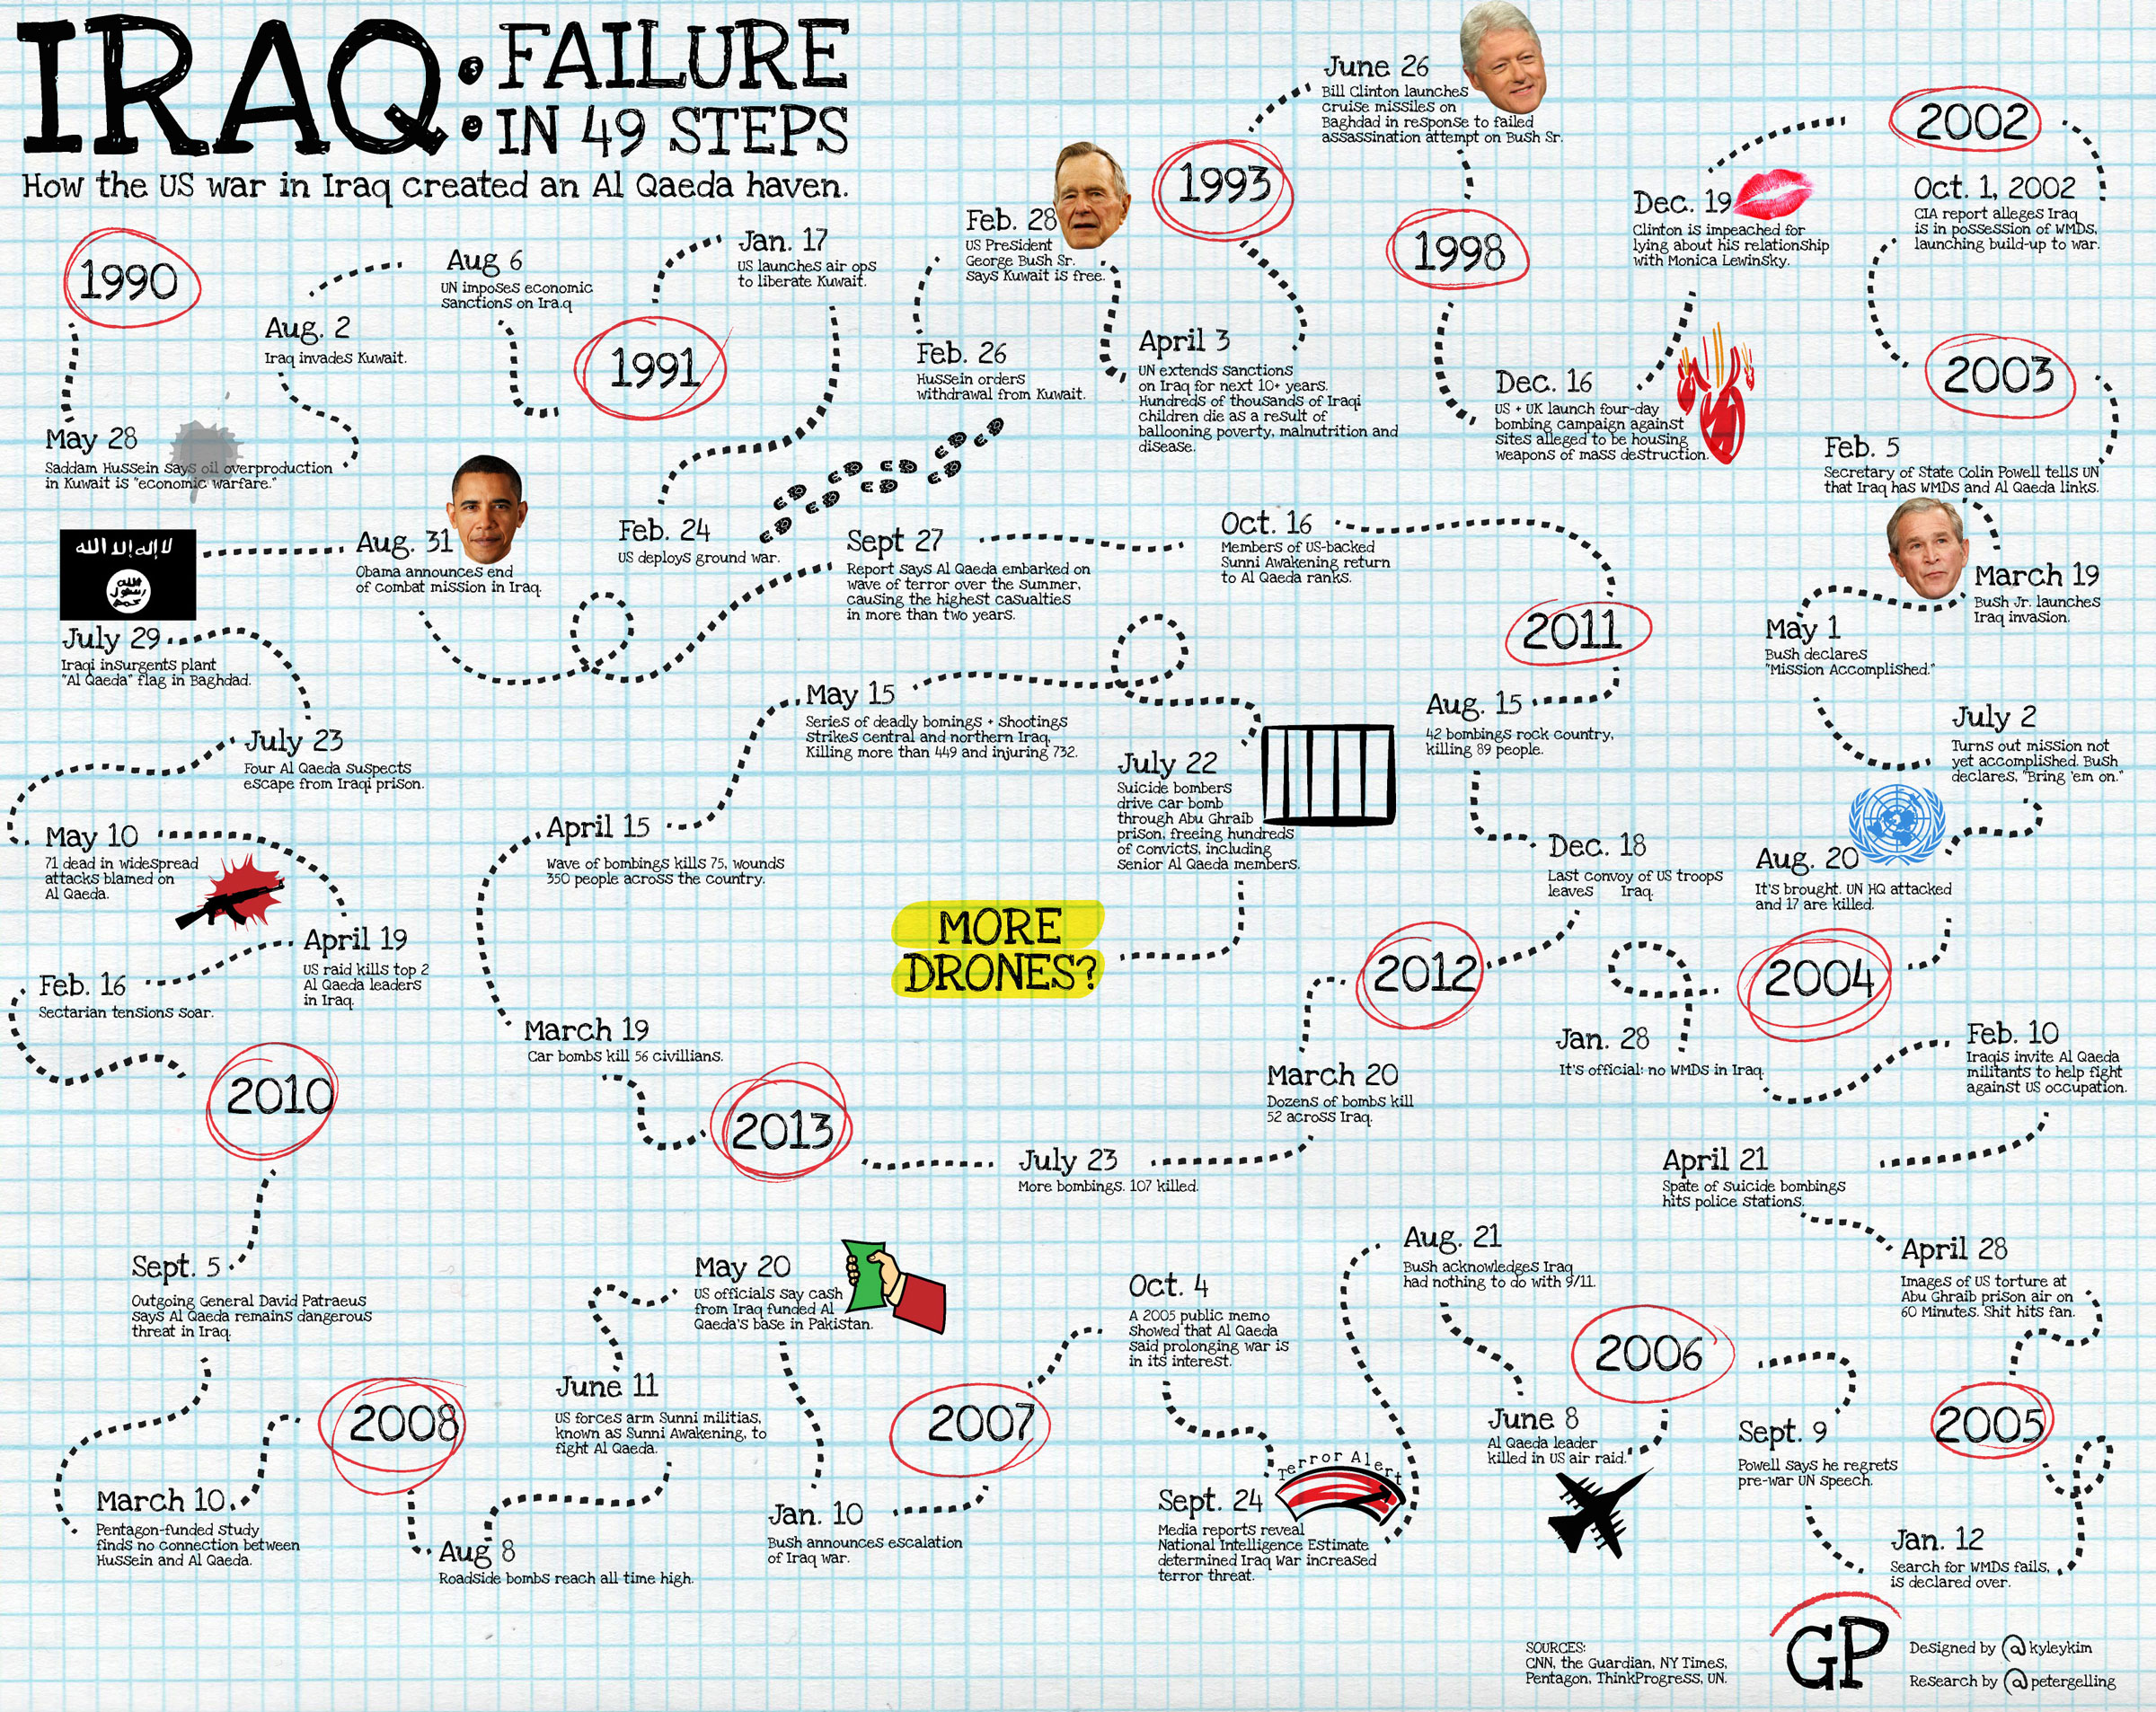 Iraq: Failure in 49 steps